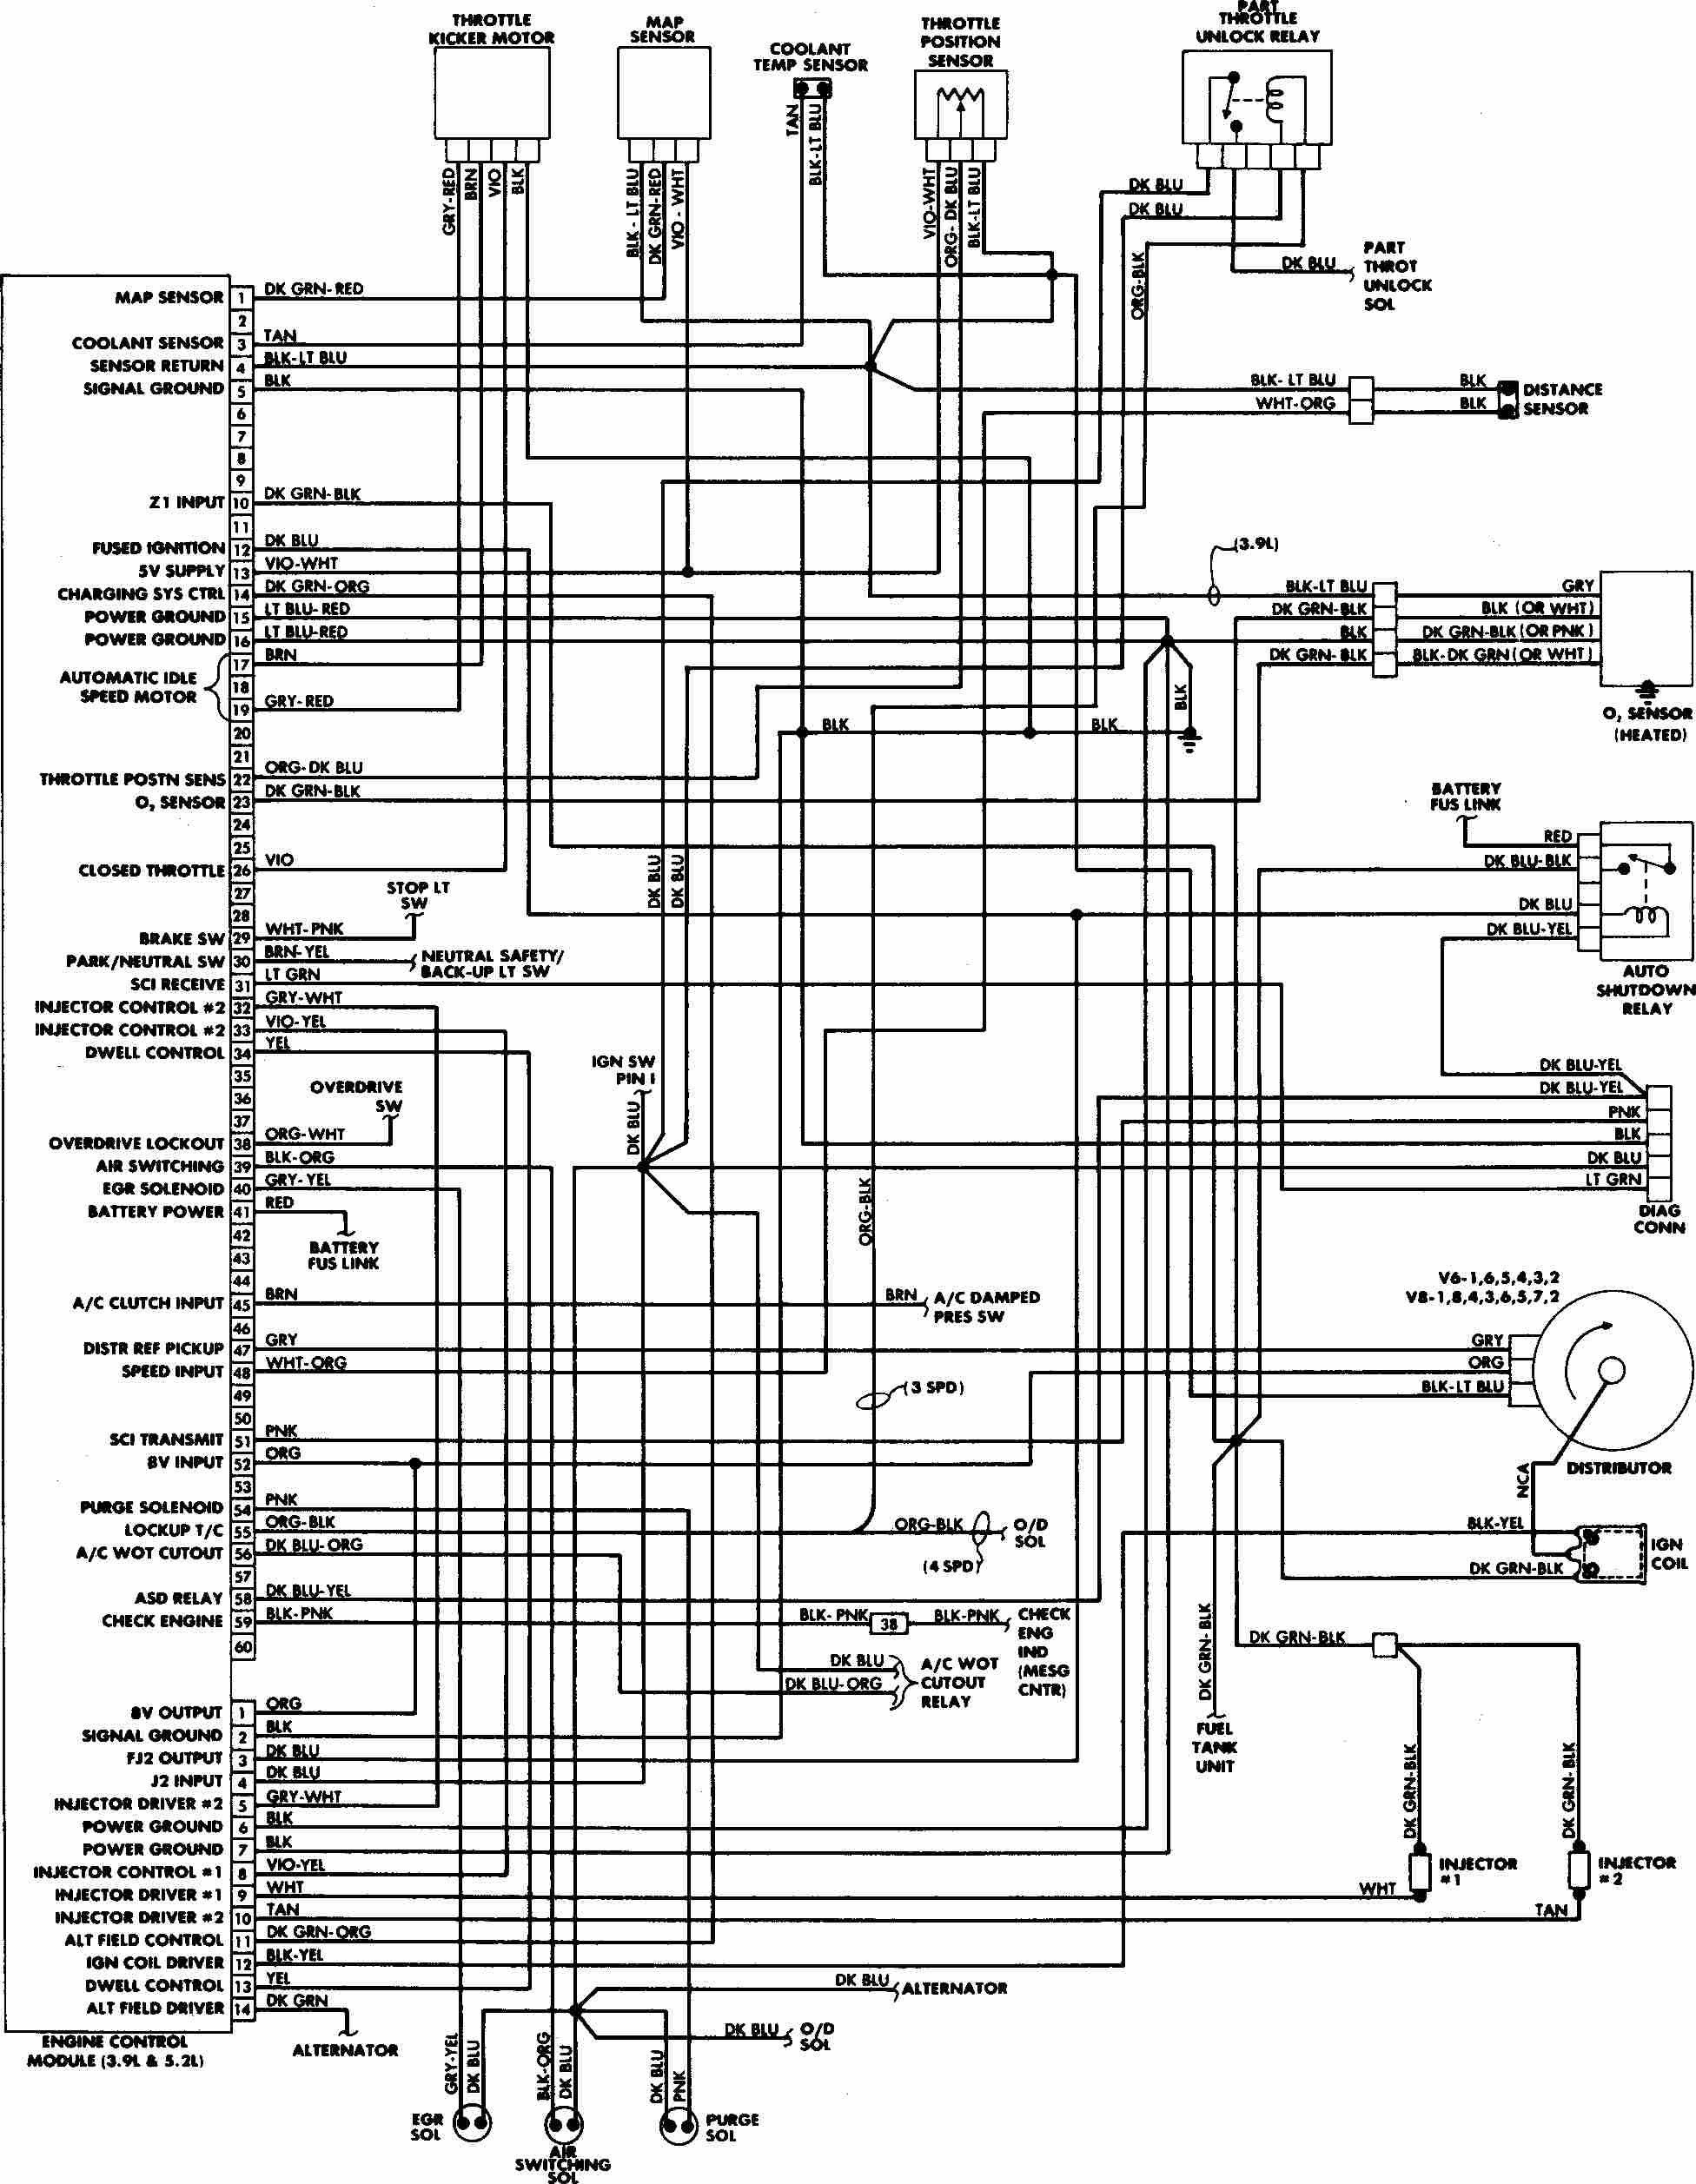 1976 Chevy Truck Wiring Diagram 76 Corvette Radiator